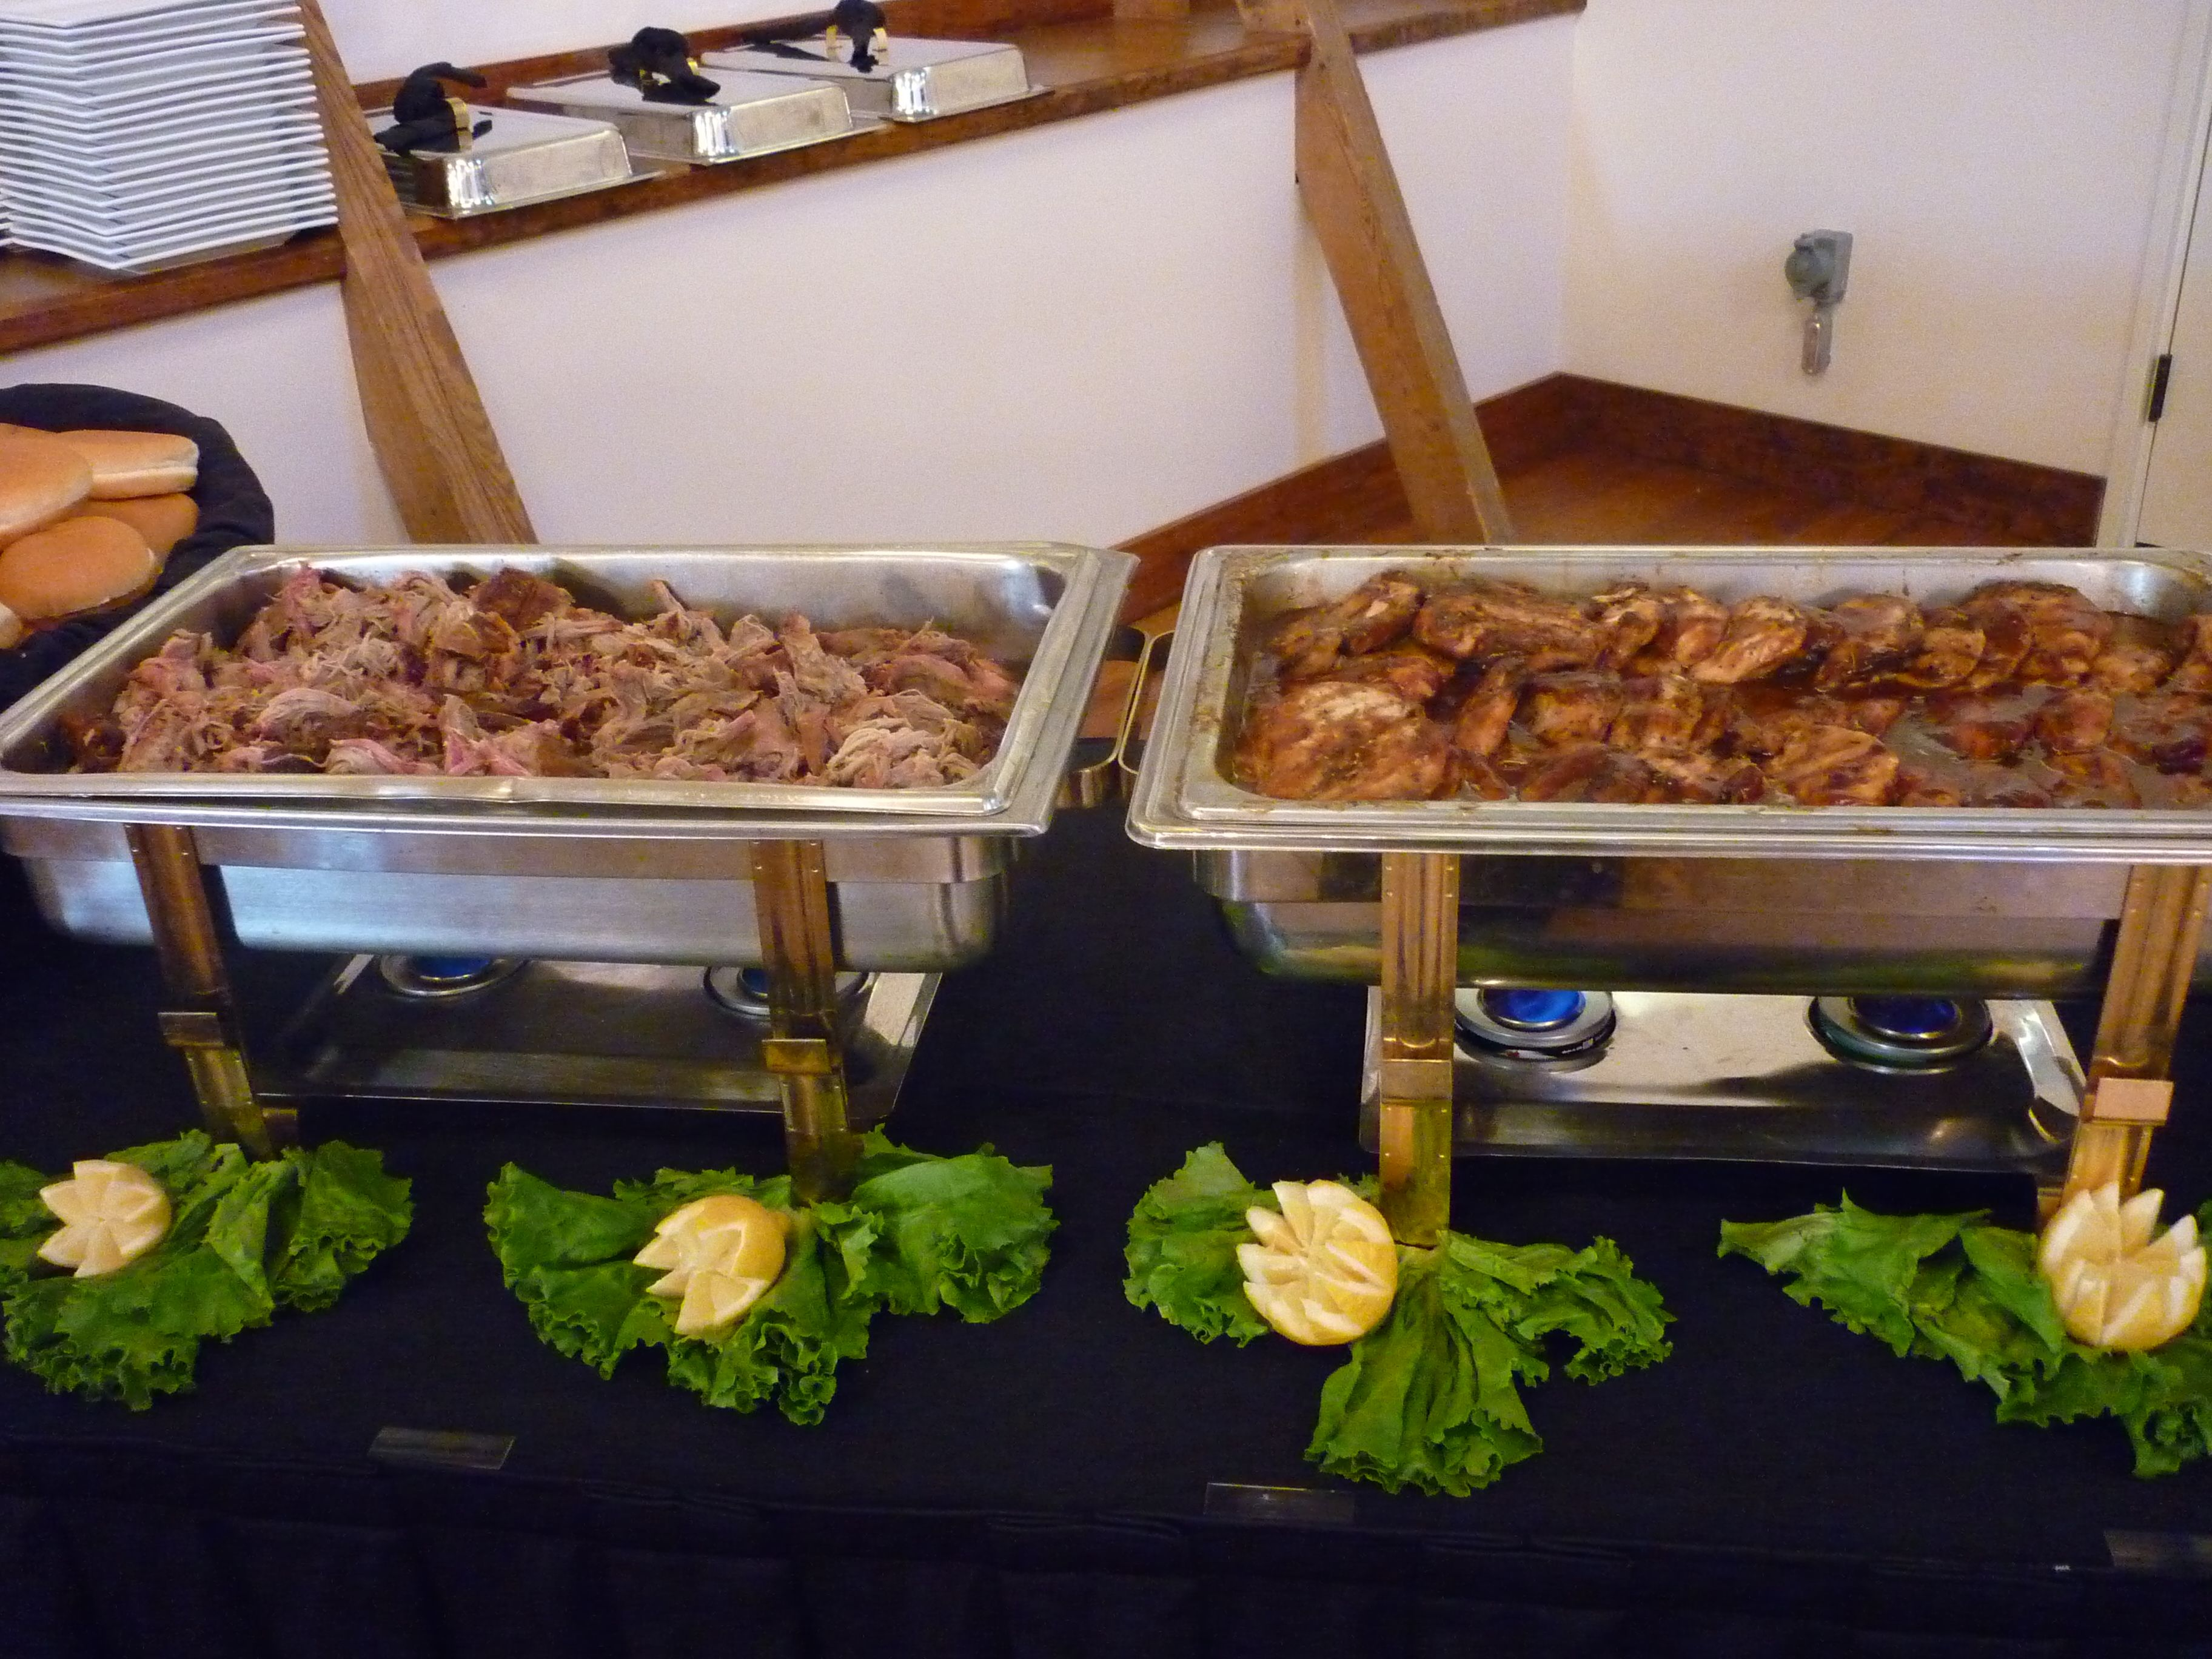 Bbq Chicken Pulled Pork At A Wedding Catering Wedding Food Food Food And Drink